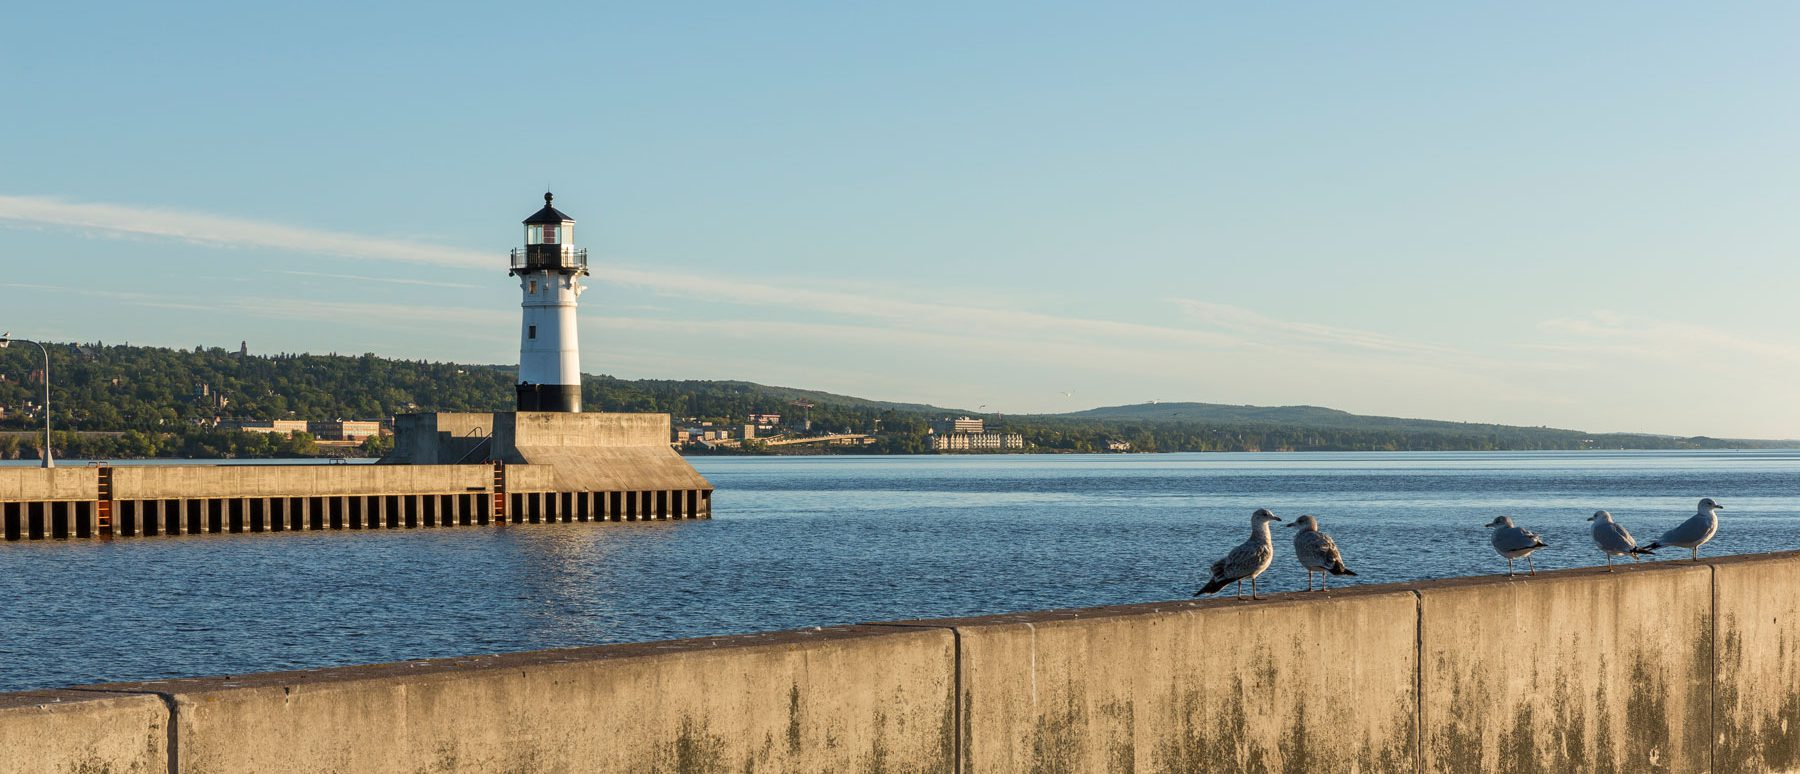 Piers at Duluth's harbor with seagulls